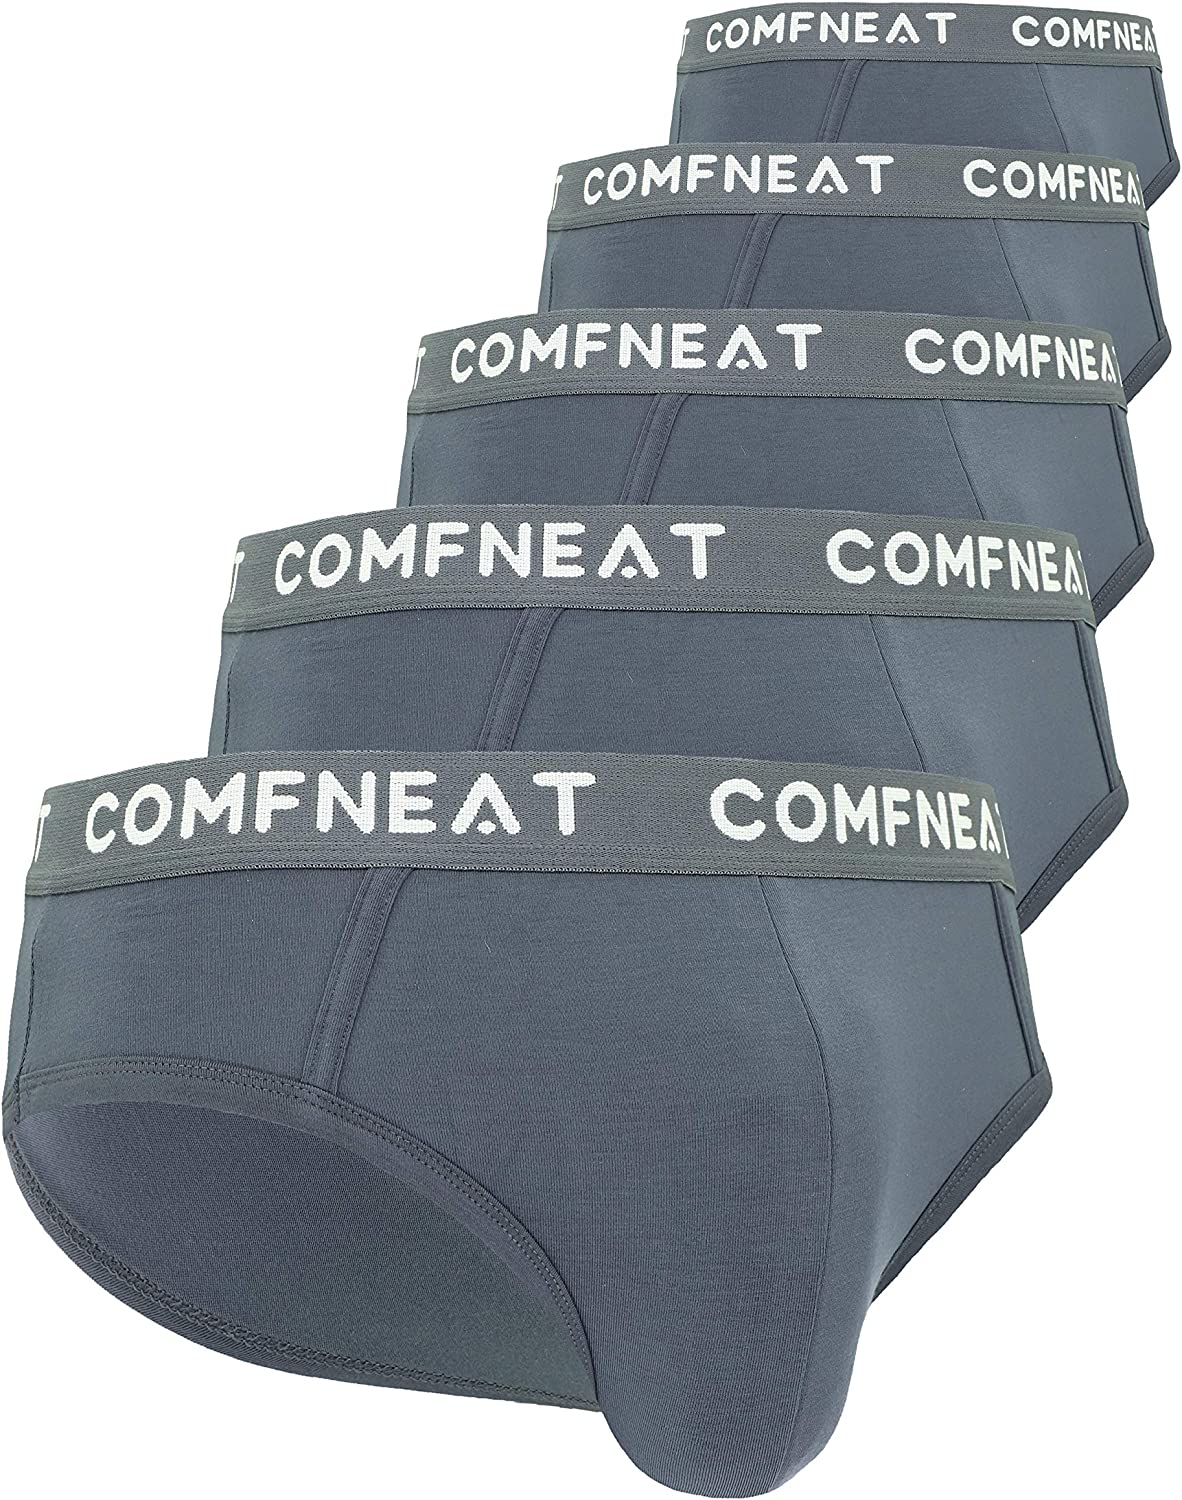 Comfneat Men's 5-Pack Briefs Elegant Bamboo Soft Stretchy Rayon Ultra Mail order cheap Co